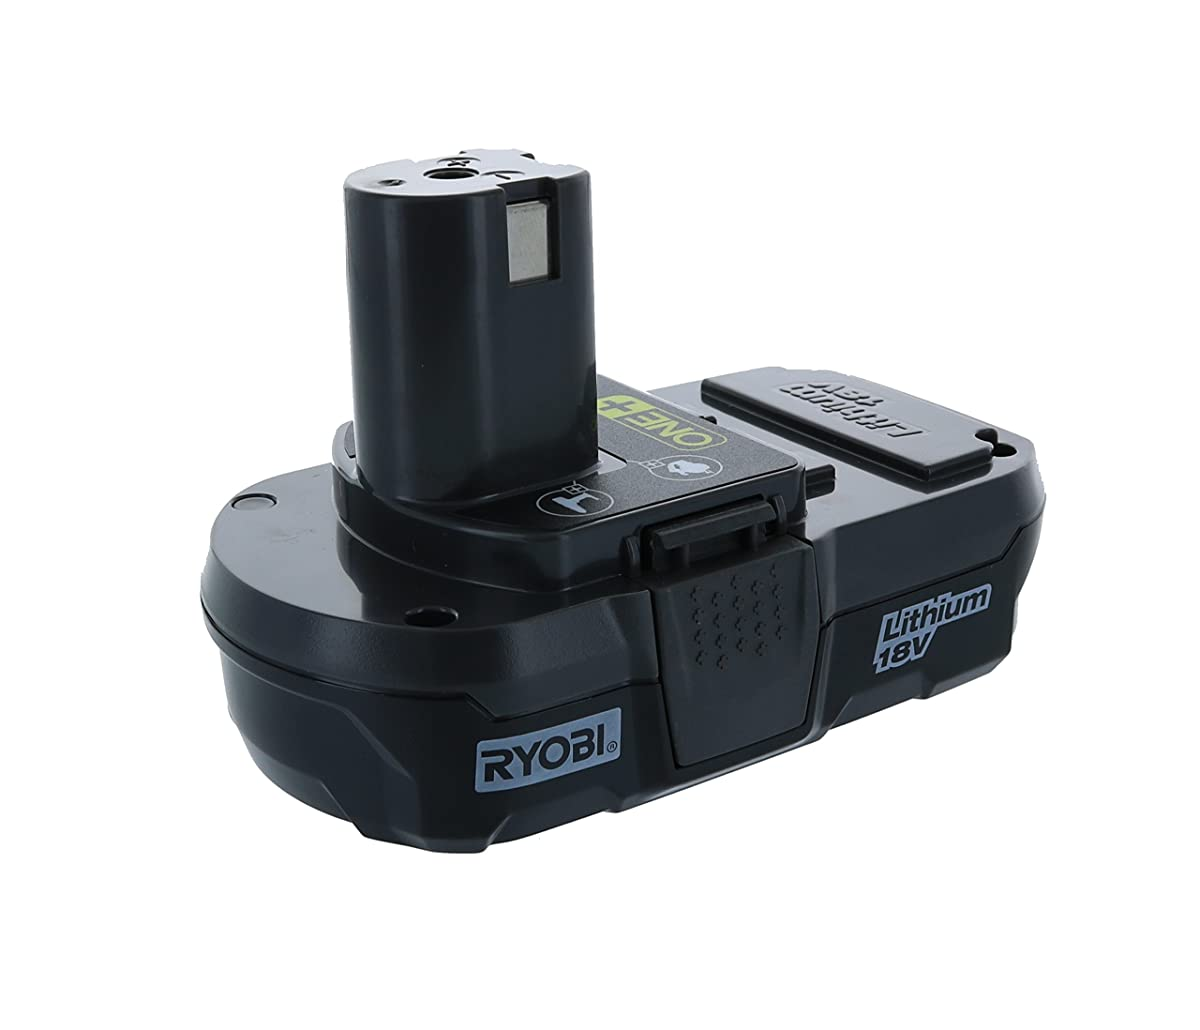 Ryobi P102 Genuine OEM 18V One+ Lithium Ion Compact Battery for Ryobi Cordless Power Tools